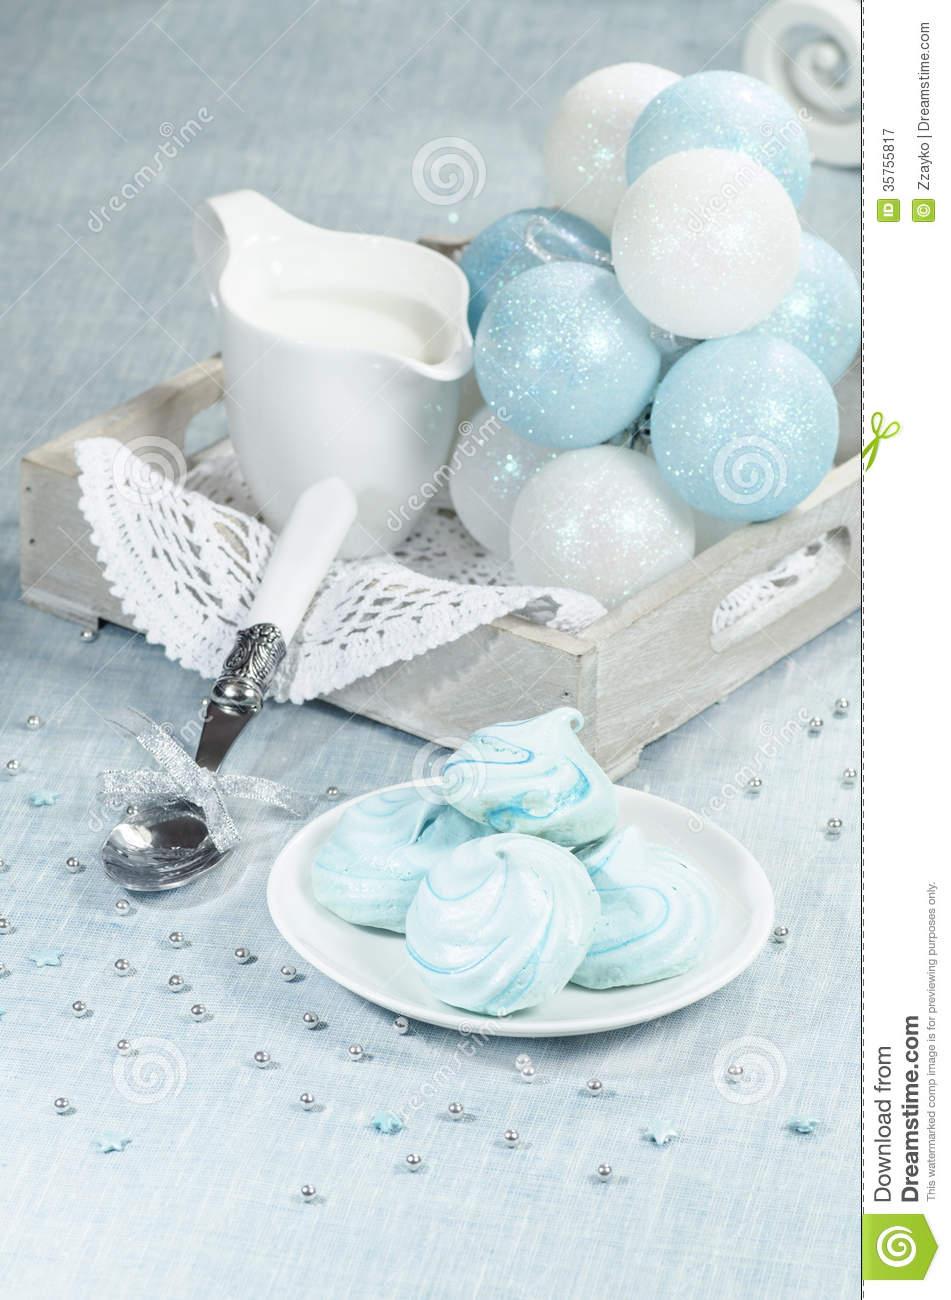 Christmas Decorations Azure Homemade Meringue Cookies And Cup Of Milk Royalty Free Stock